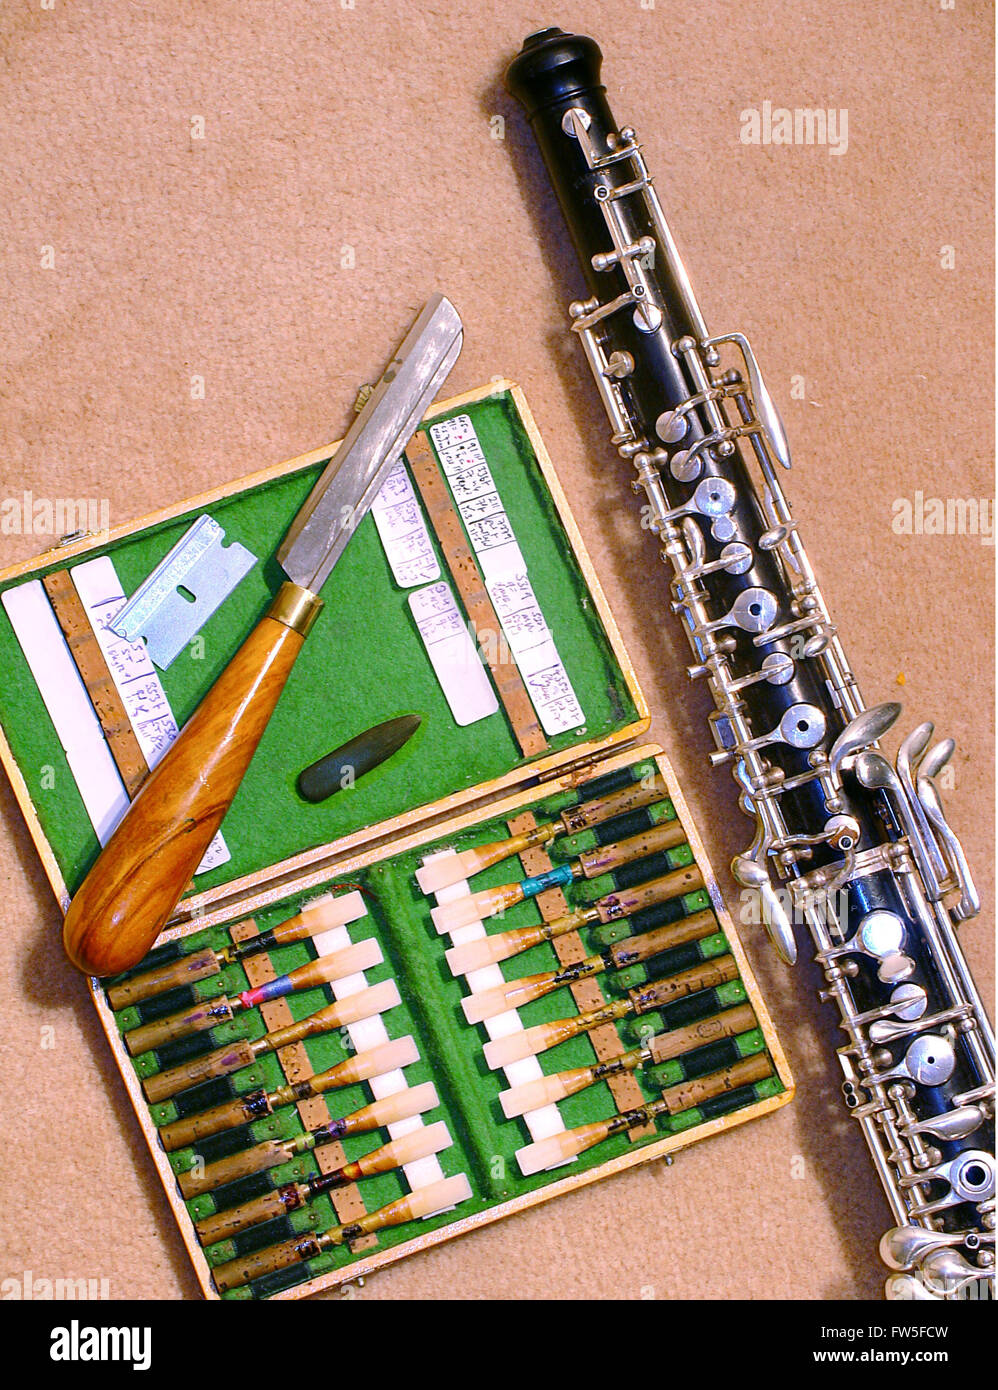 Oboe with box of reeds, scraping knife, 'tounge', and razor blade. Written notes refer to history of usage. Stock Photo